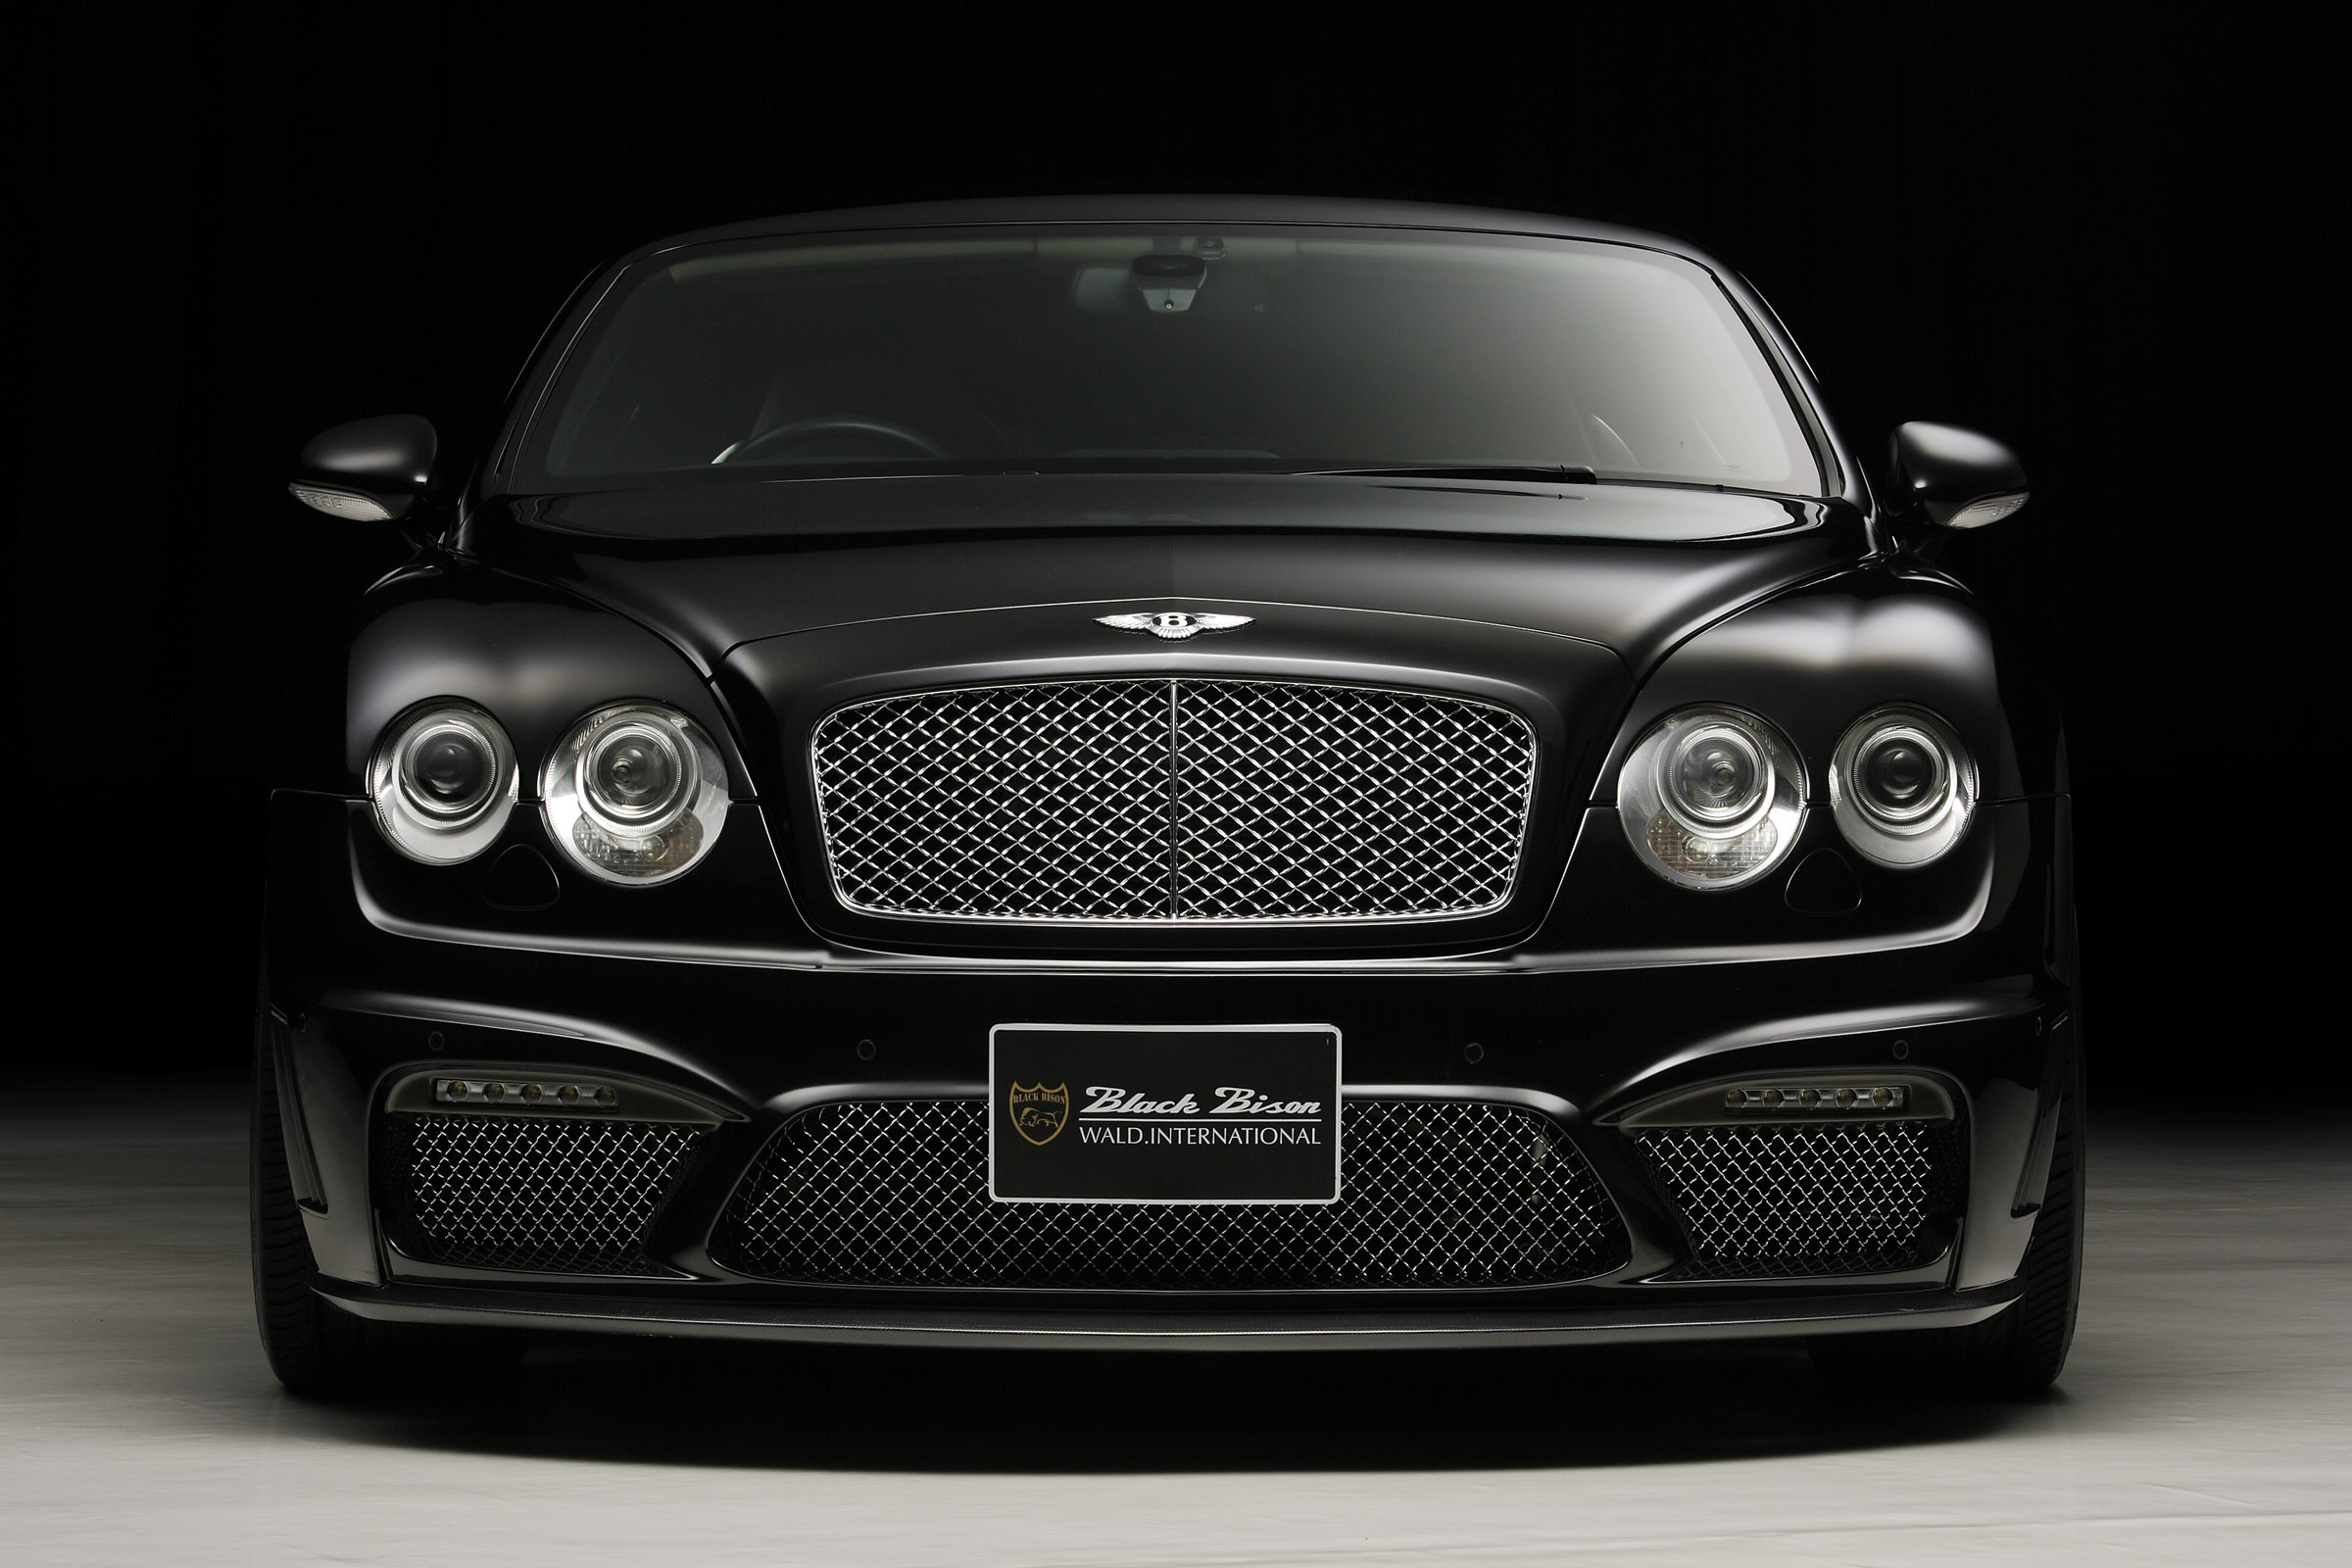 Wald Bentley Continental Gt Black Bison Edition Picture